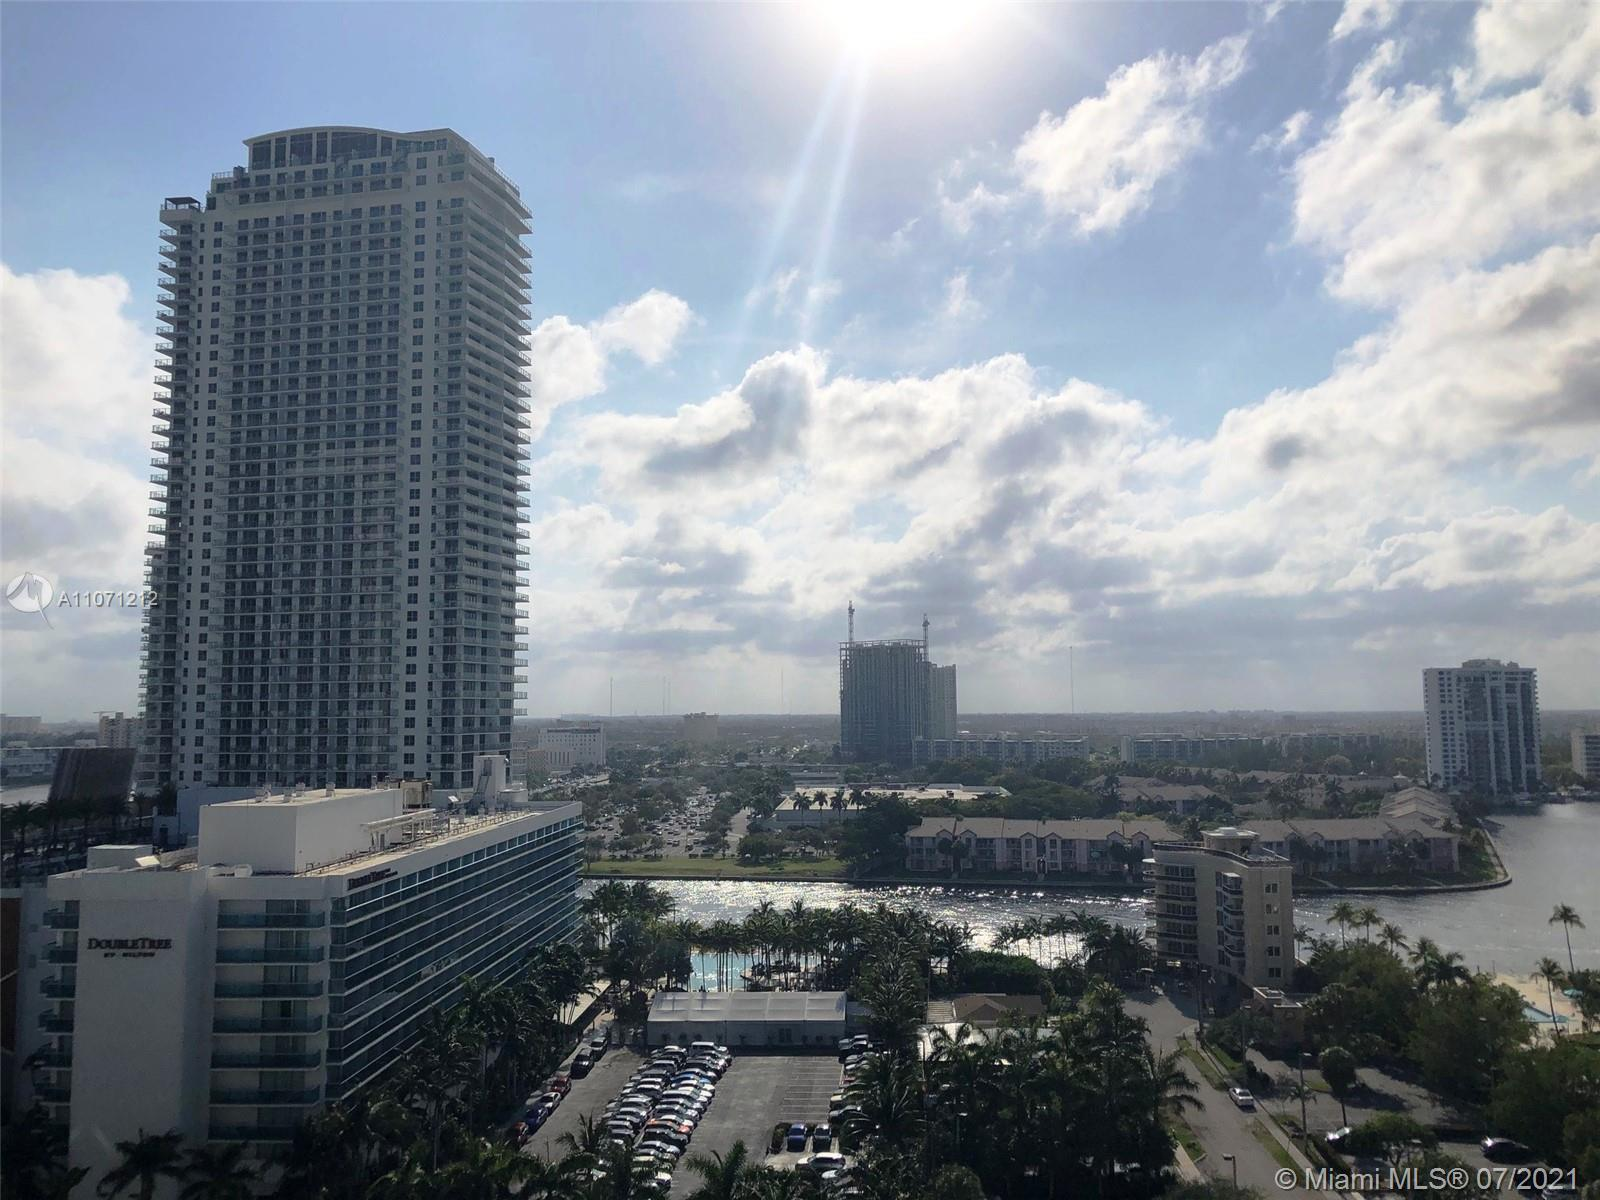 HOT,HOT HOLLYWOOD BEACH,FL. MID-LUX RESORT STYLE CONDO DIRECTLY ON THE OCEAN. TOP FLOOR CORNER 2BR/2